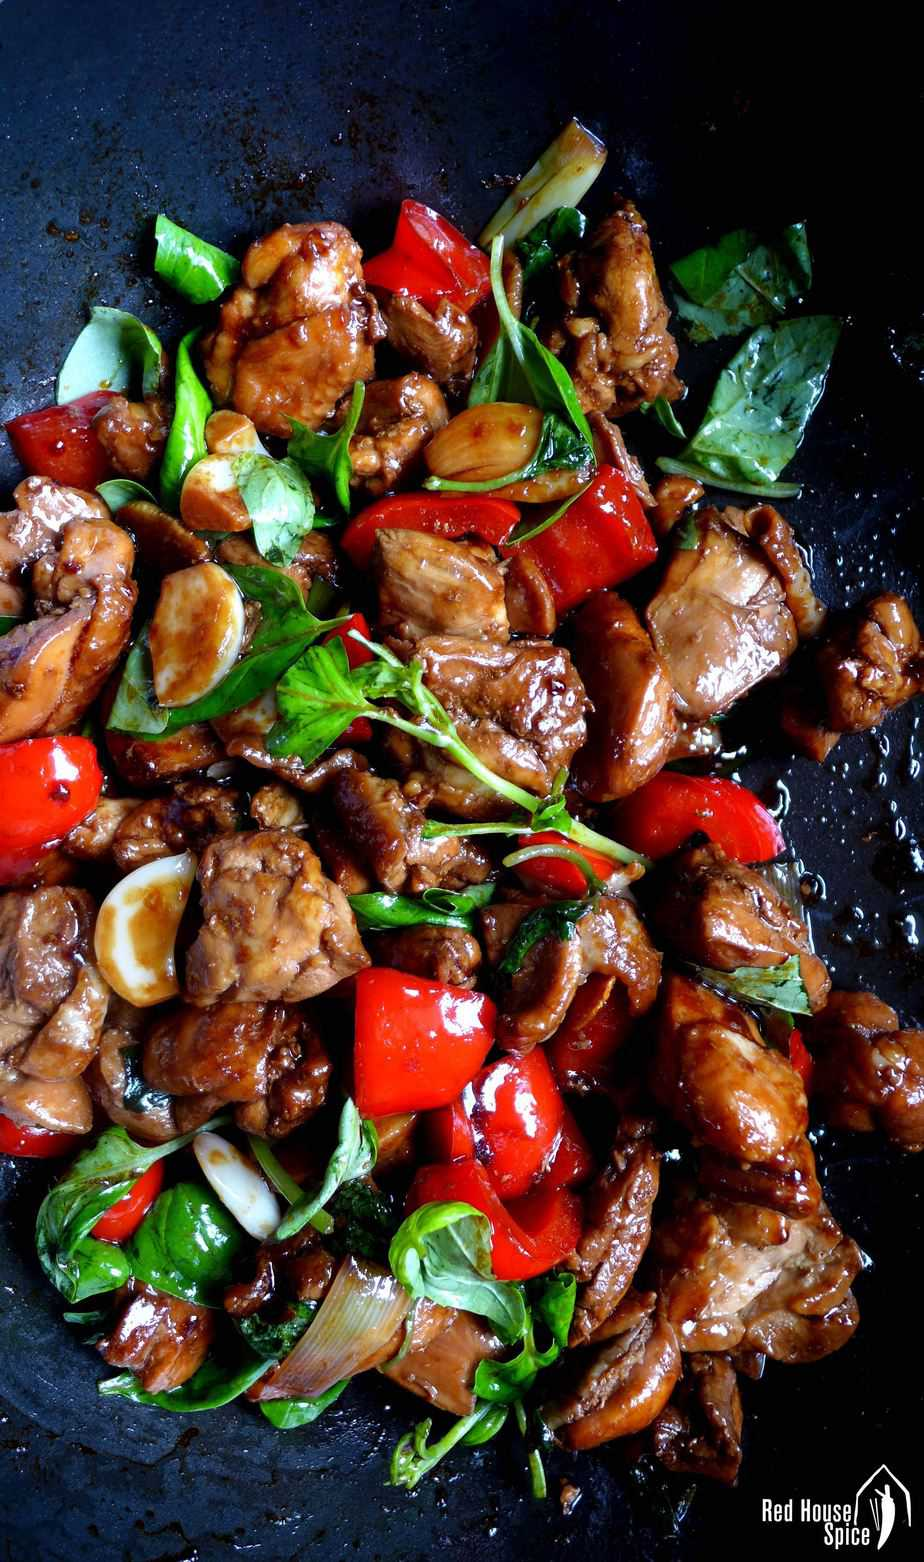 Fried in sesame oil, braised in rice wine and soy sauce, then flavoured with fresh basil, Taiwanese three cup chicken is super aromatic and very easy to cook.